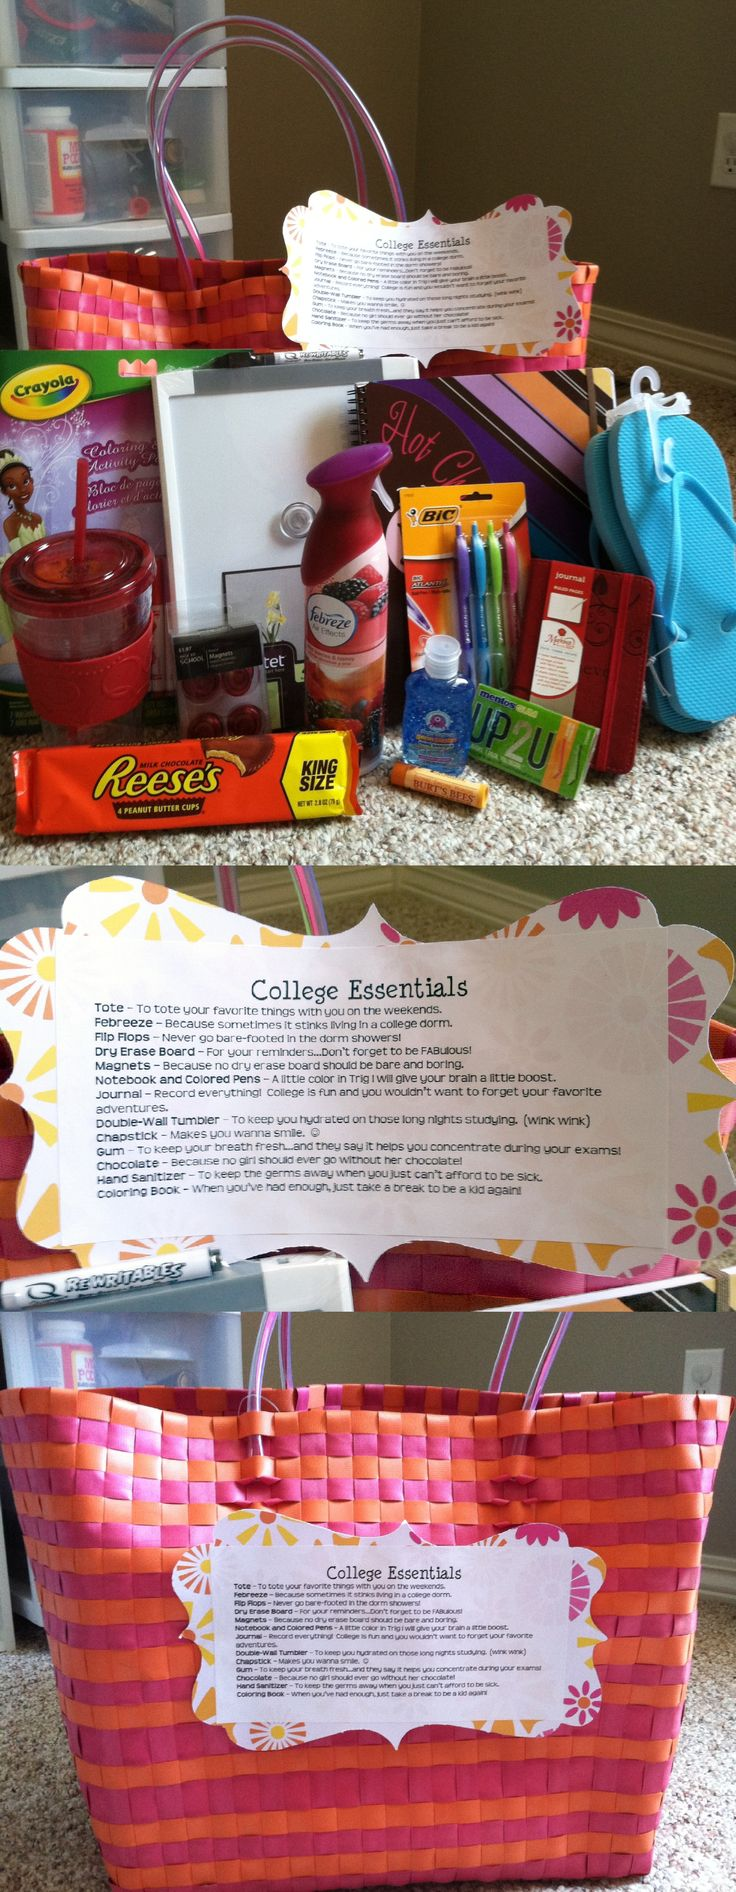 College Essentials...High School Grad Gift might have to keep this in mind come grad season